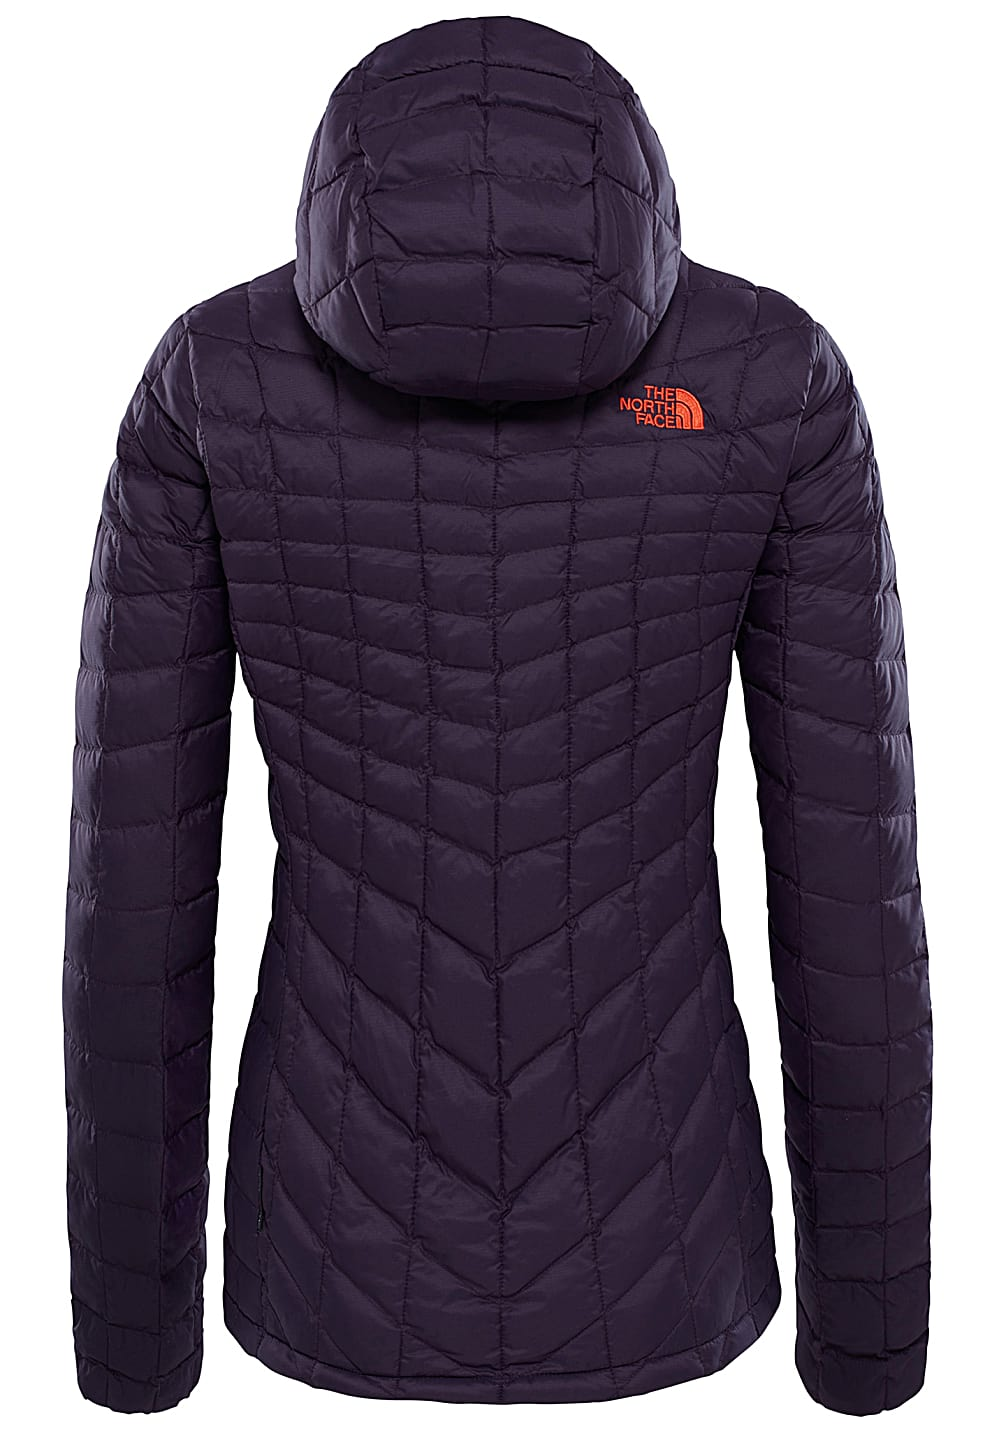 THE NORTH FACE Thermoball - Outdoorjacke für Damen Lila